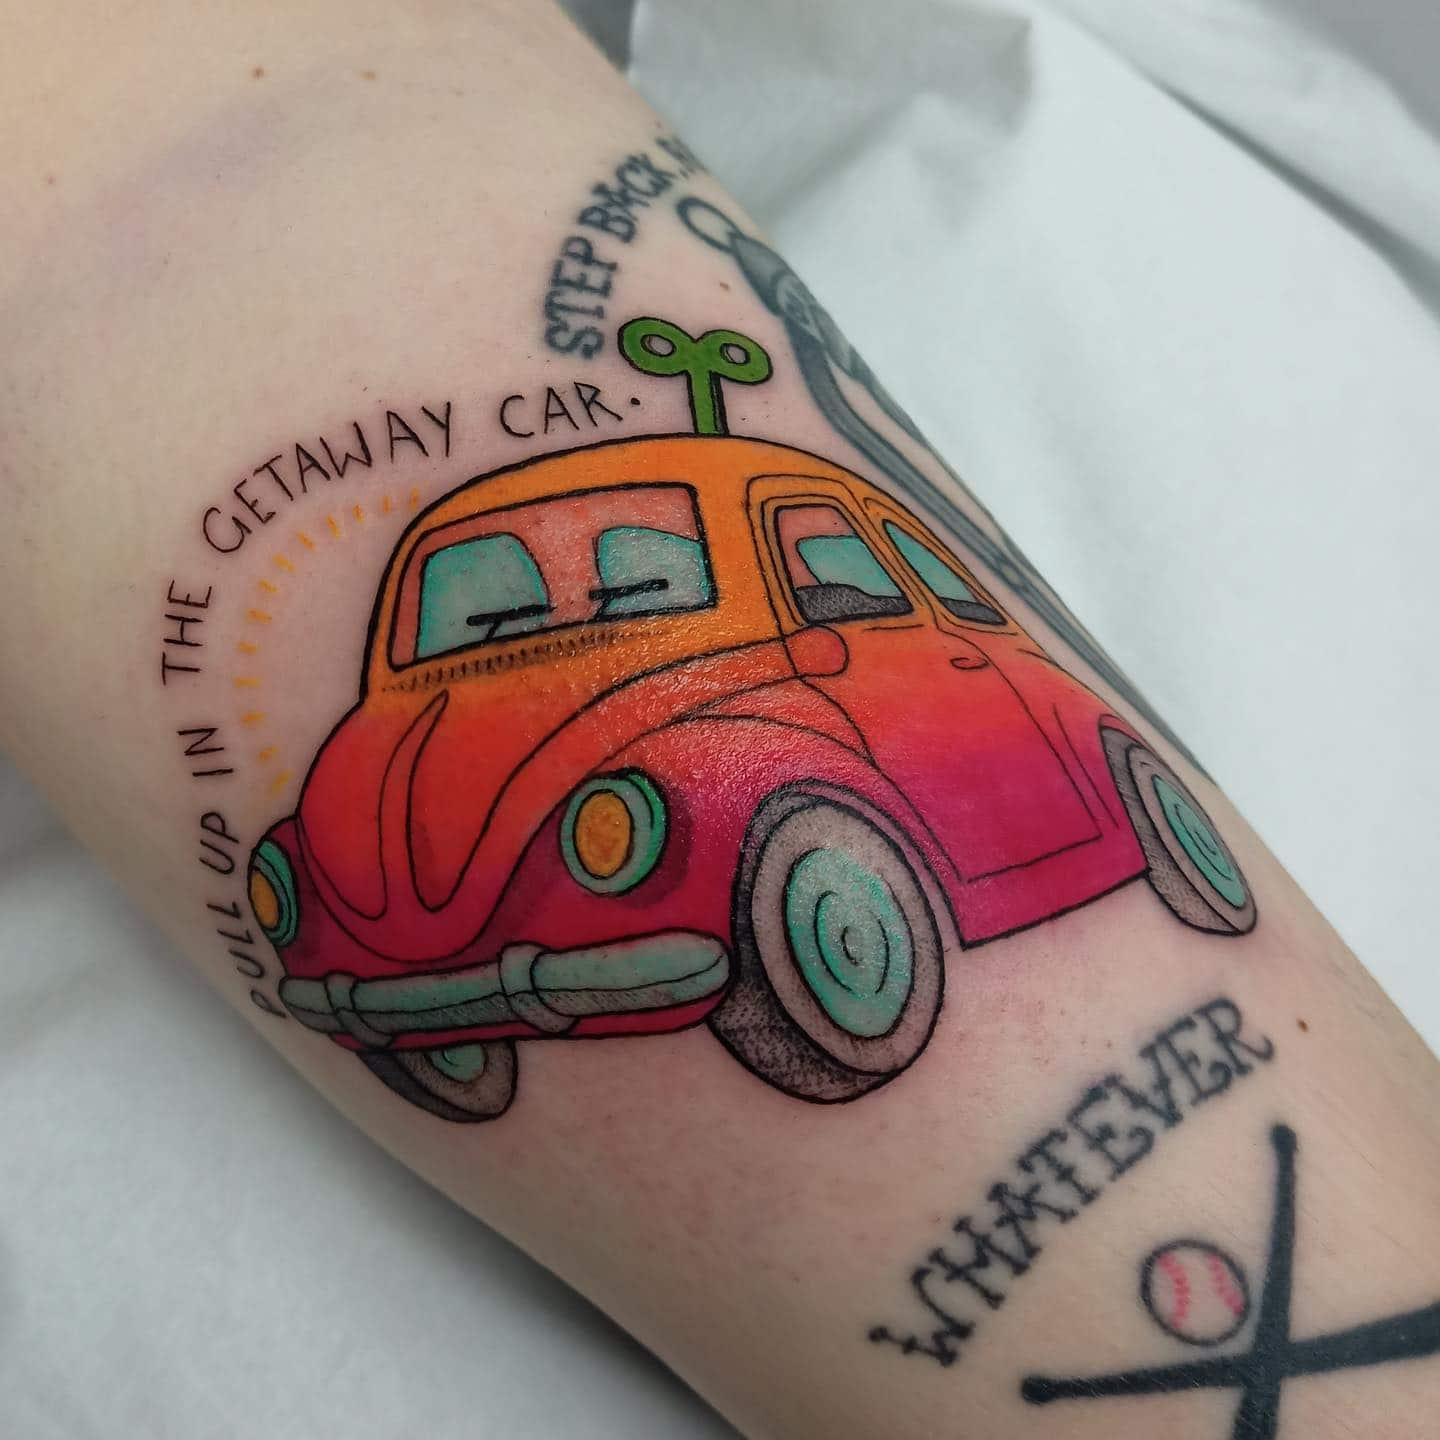 Resident kalipsotattoo is always happy to fulfil your colour needs - she would love to do some more colourful ones like this lil windup car 🚗🌈💫  We are currently closed due to the lockdown - but if you want some new tattoos from Kali next year, get in touch with the reception team using the tattoo enquiry form on our website or direct message Kali on Instagram ✨  📩 - link in the bio 📲 kalipsotattoo                                  totaltattoo barber_dts easytattoo_uk eternalink dynamiccolor lockdownneedle stencilstuff